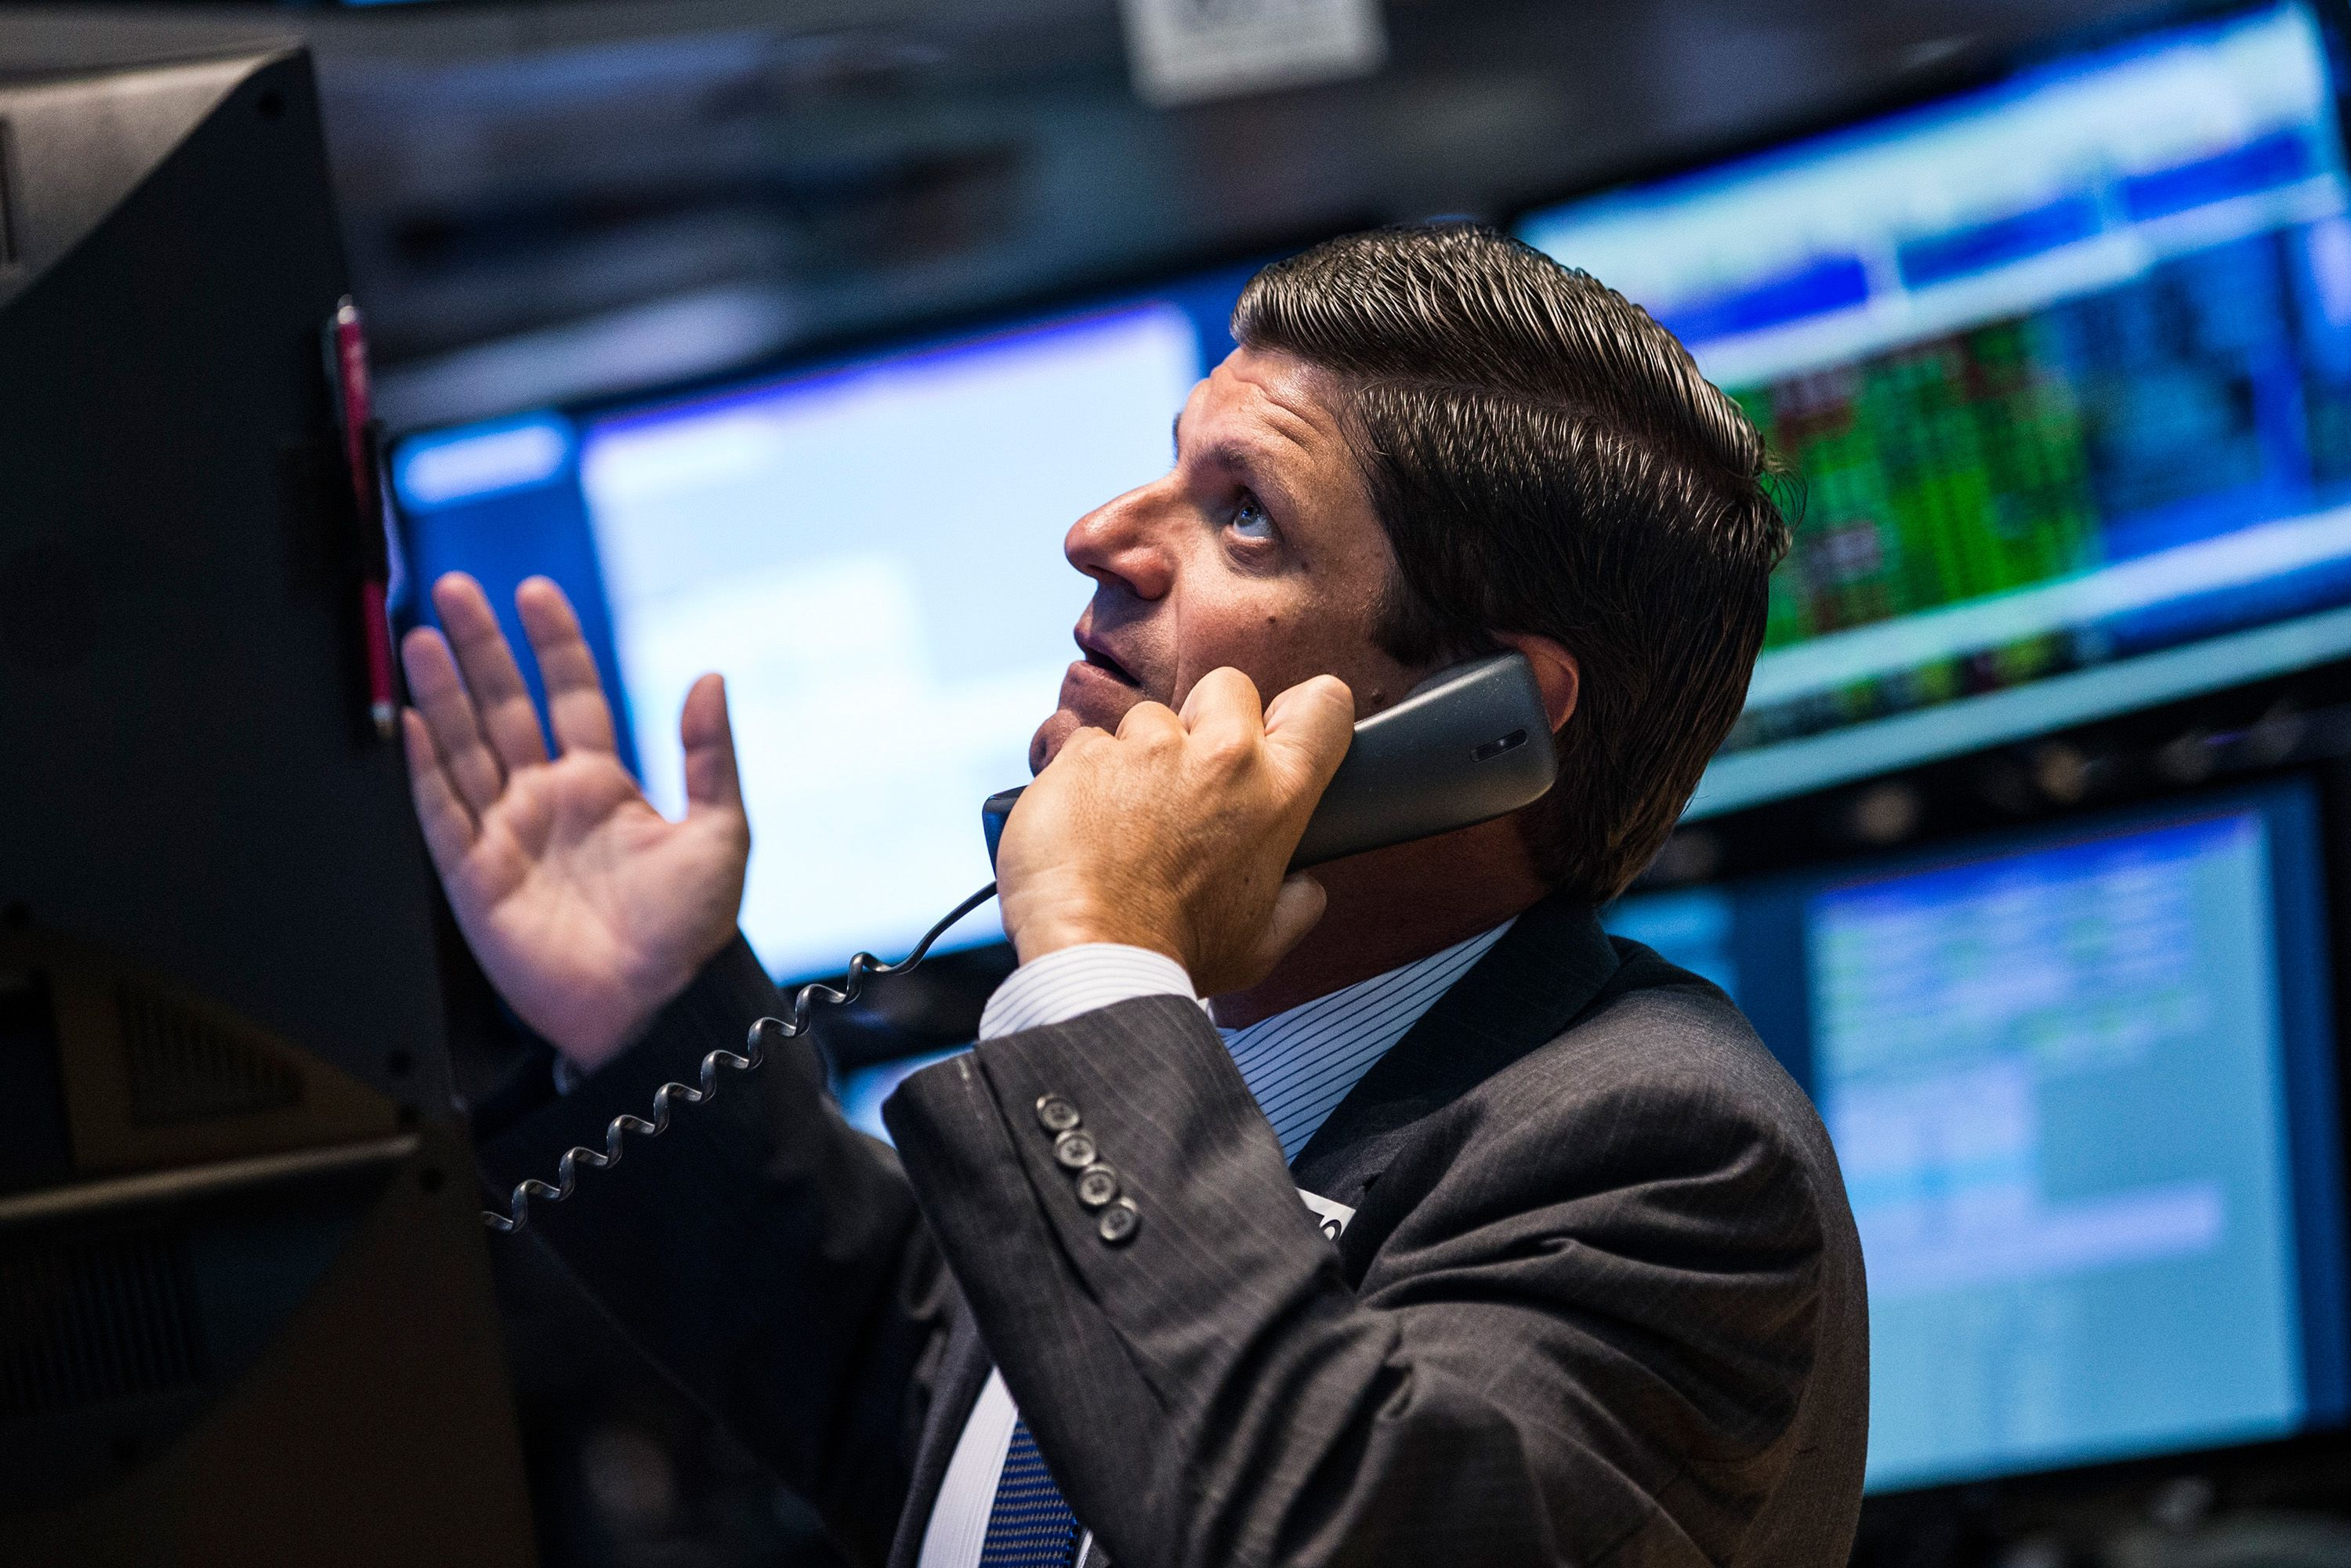 how the stock market works A stock market is where investors meet to buy and sell shares markets used to be literal places, but now stocks are bought and sold electronically.